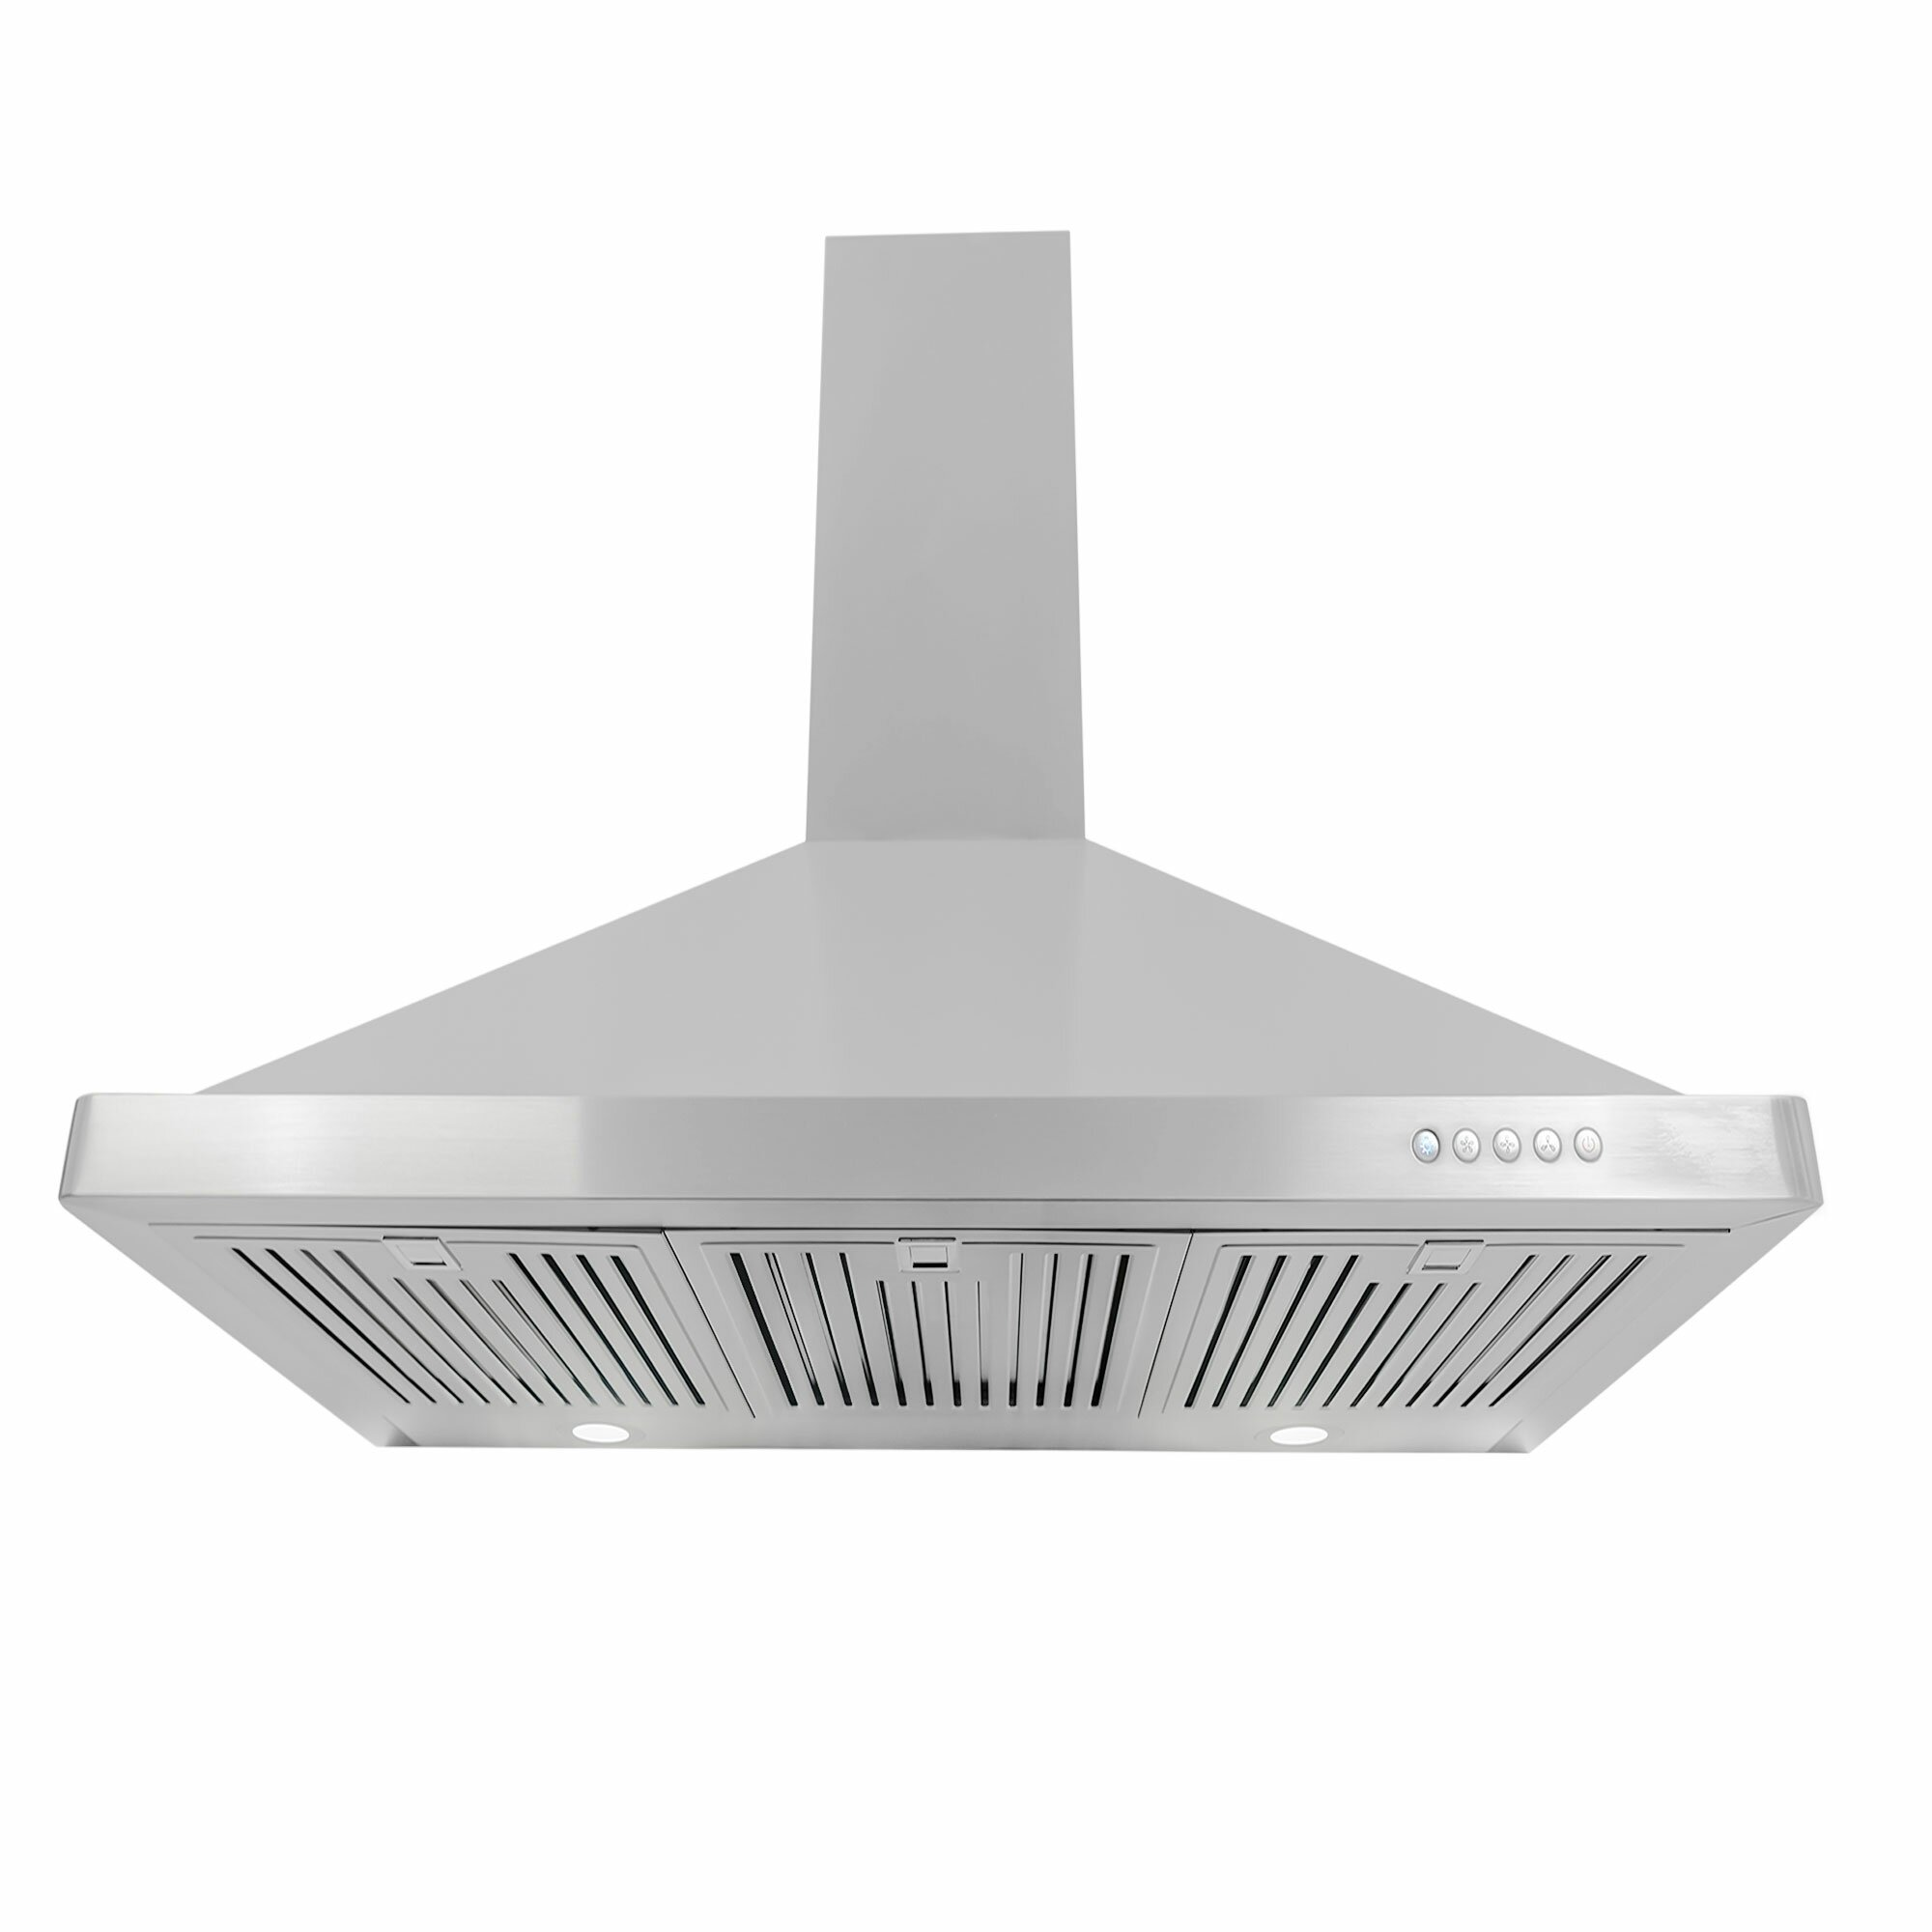 Extractor fan kitchen hood - Extractor Fan Kitchen Hood Astonishing Within Extractor Kitchen Source Part 2